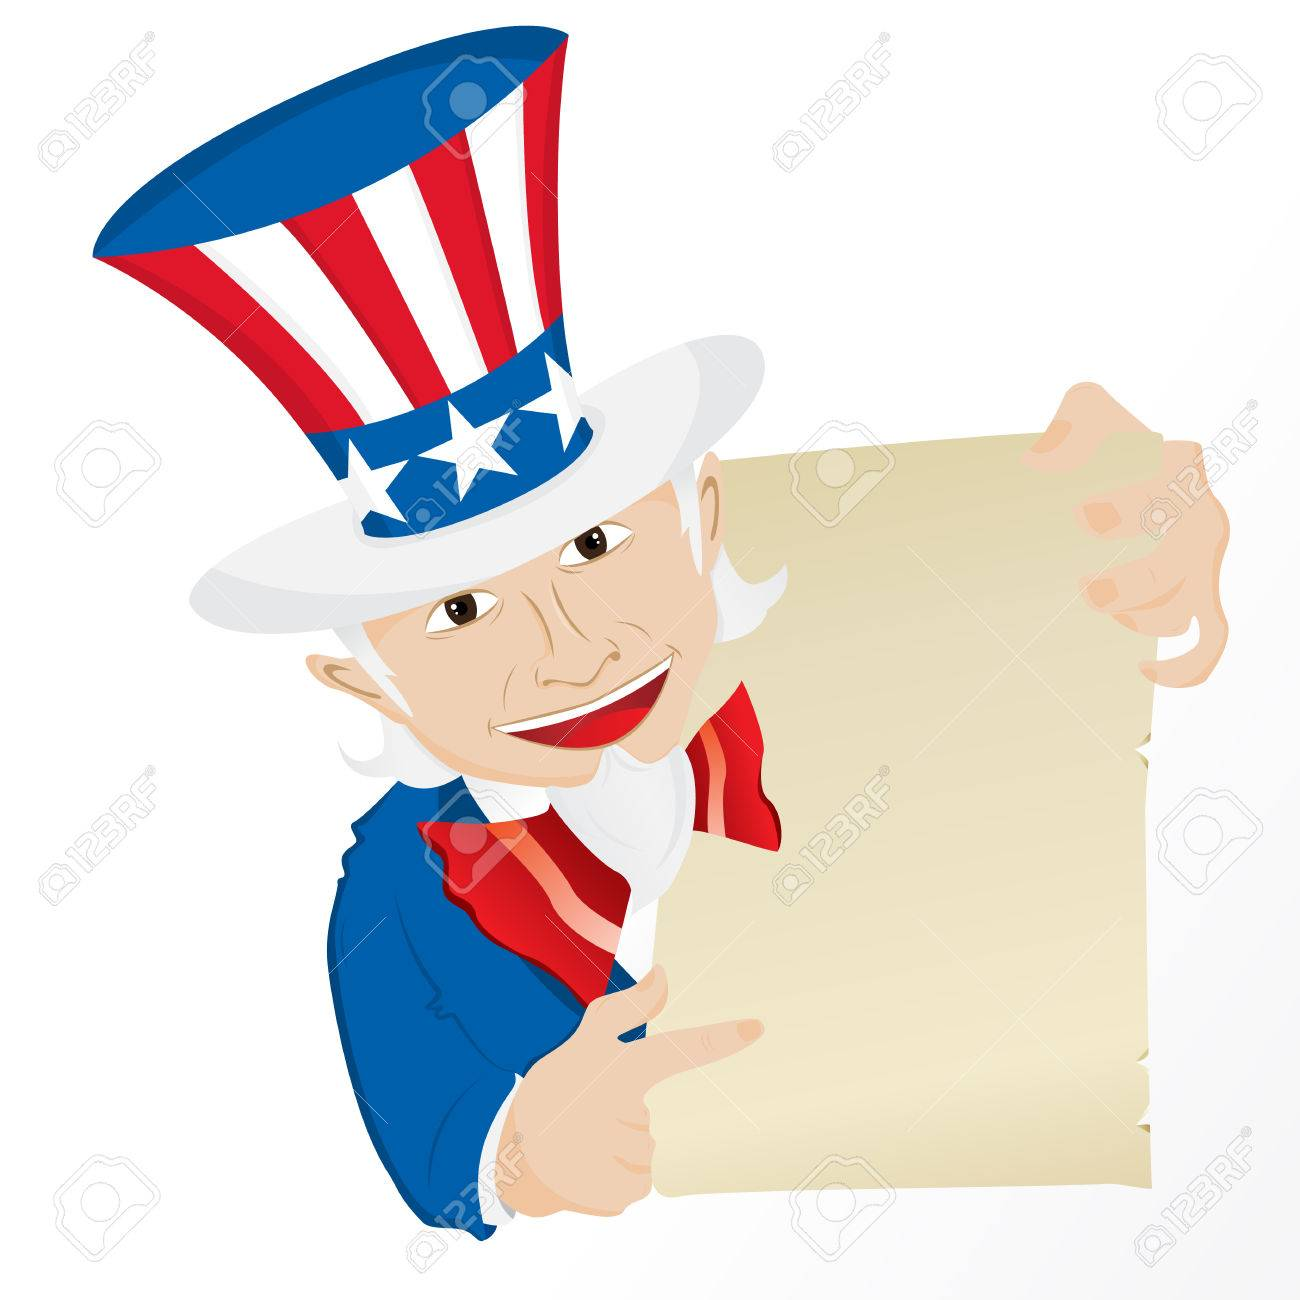 Uncle Sam Holding Sign. Editable Illustration Stock Vector - 7120210